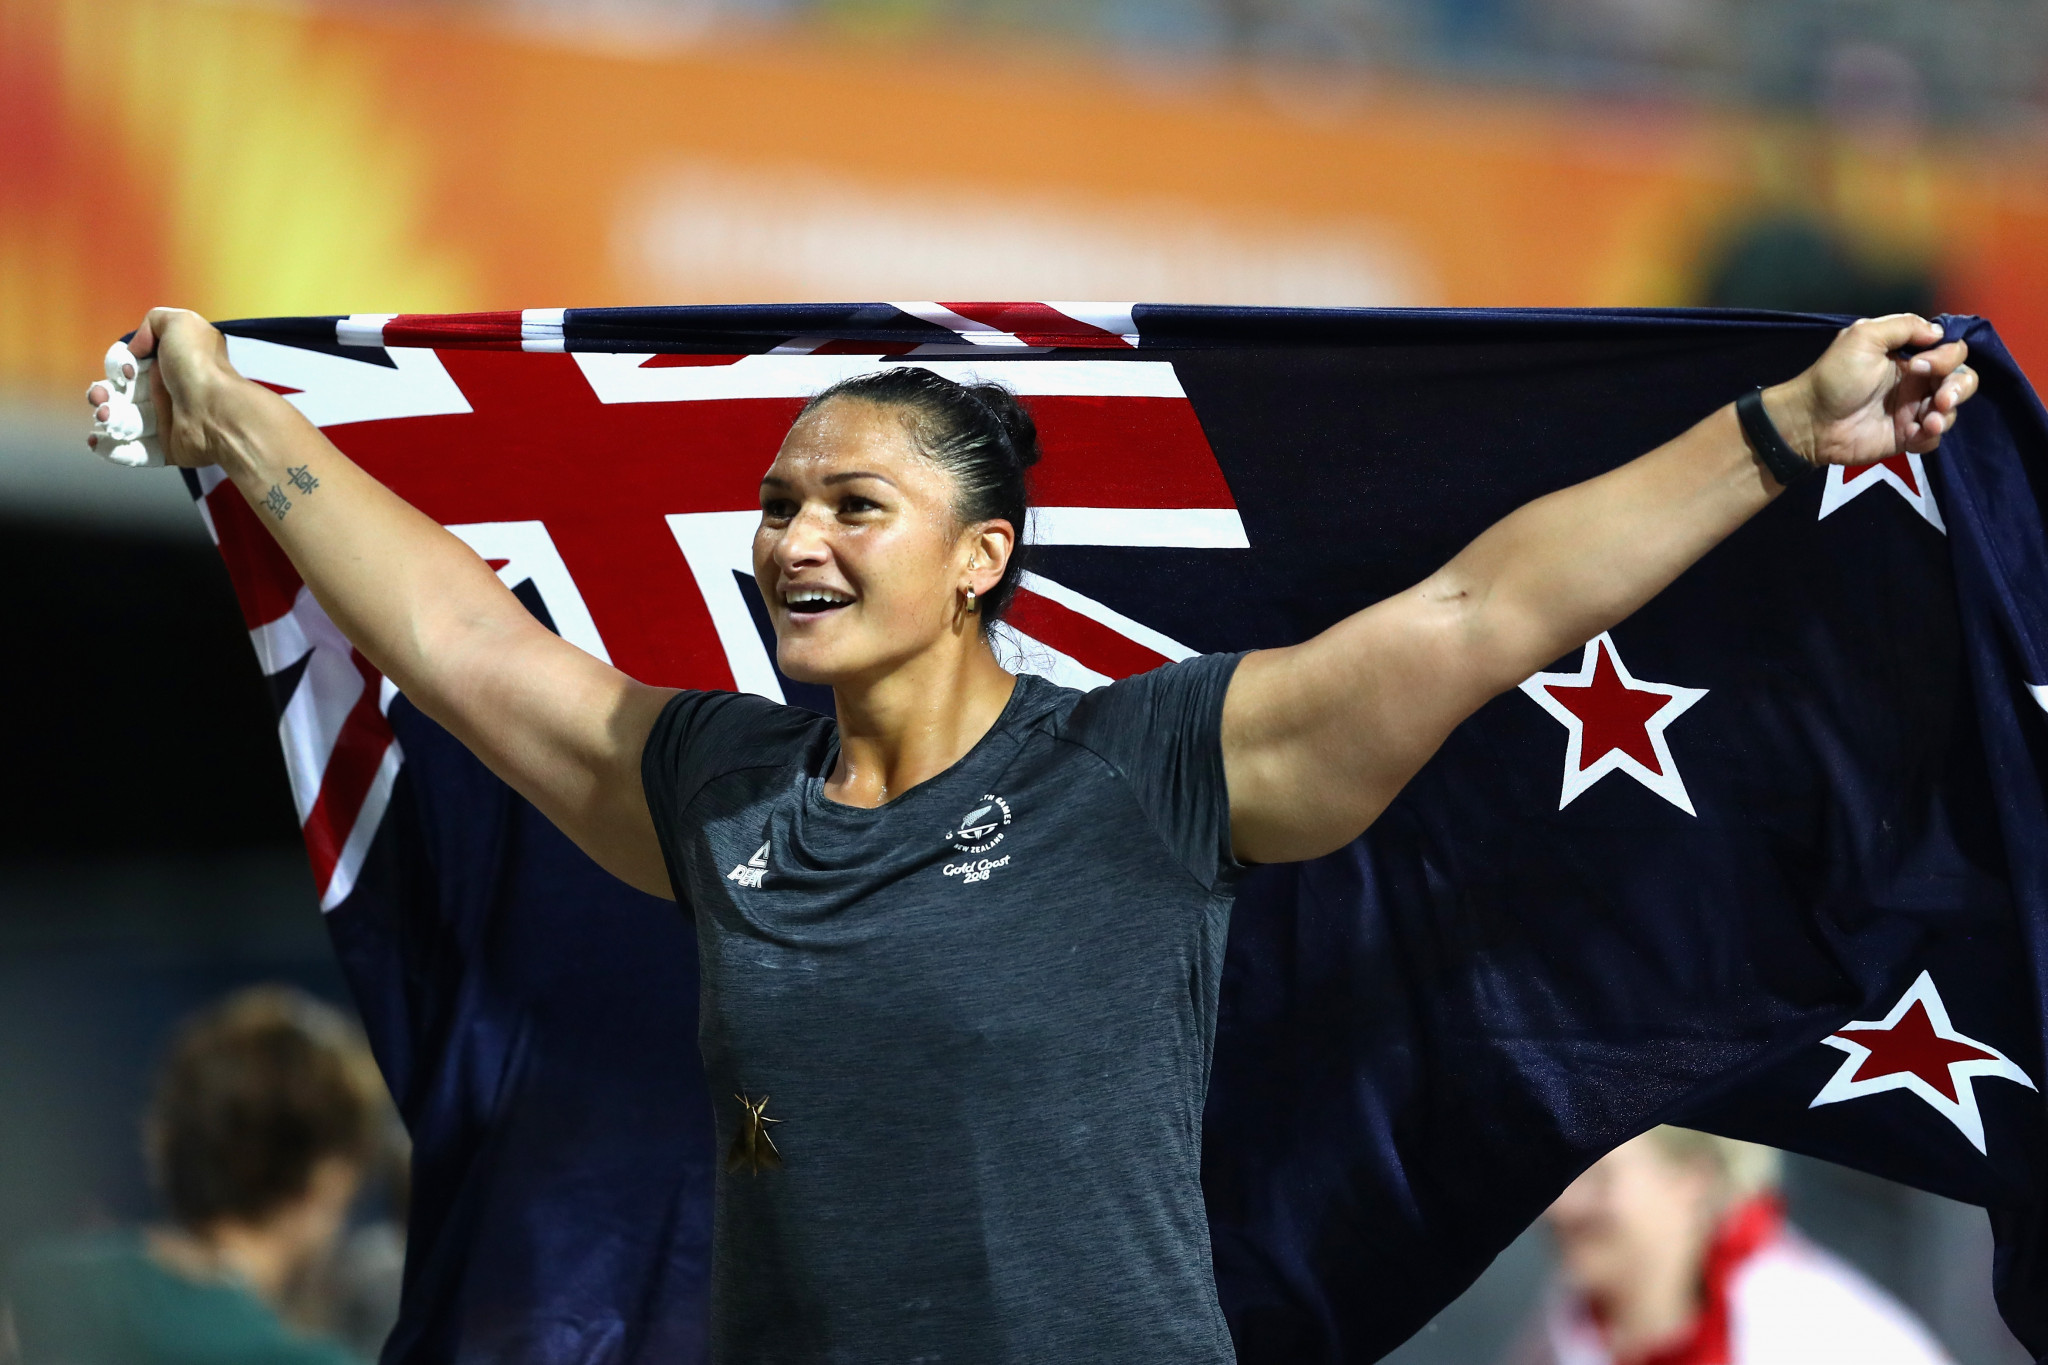 Valerie Adams will officially start the 24:1 races ©Getty Images